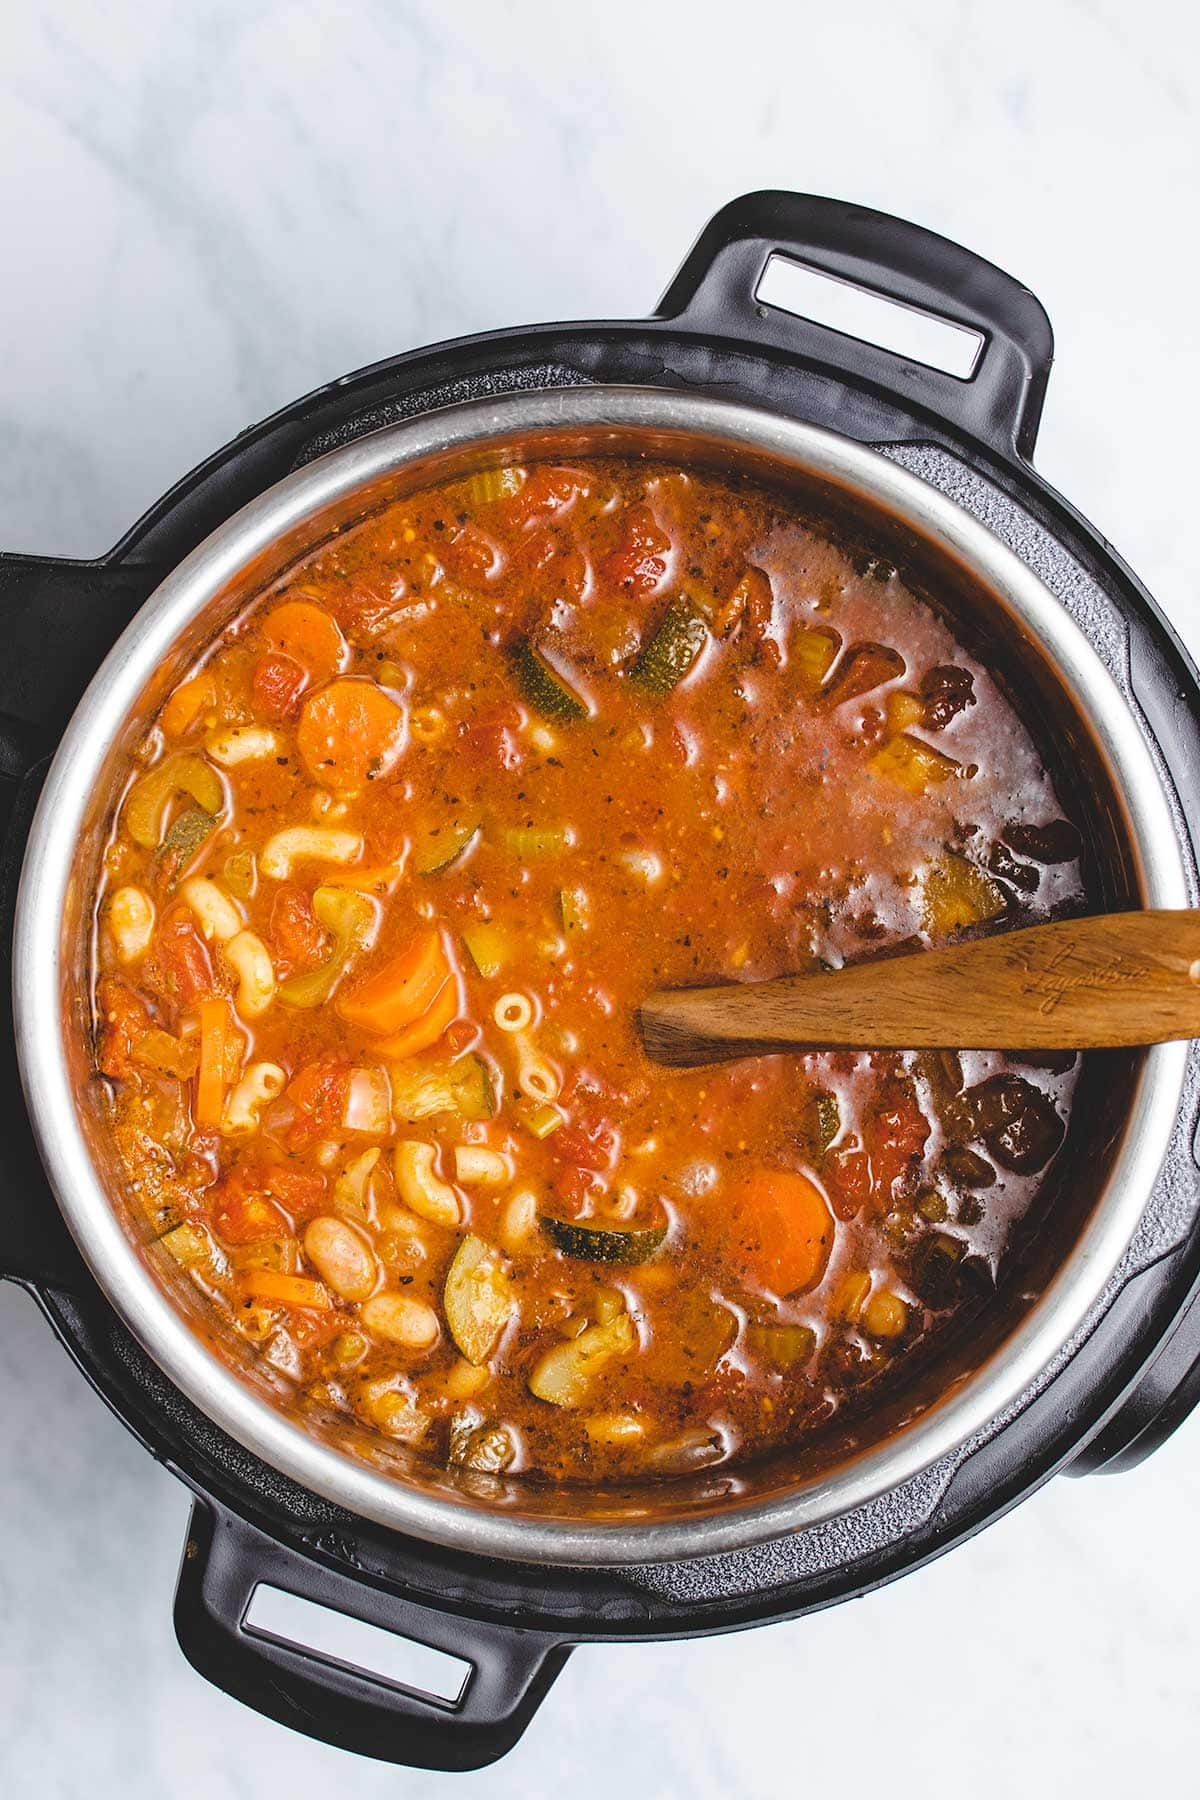 Vegetable Soup in an Instant Pot being stirred by a wooden spoon